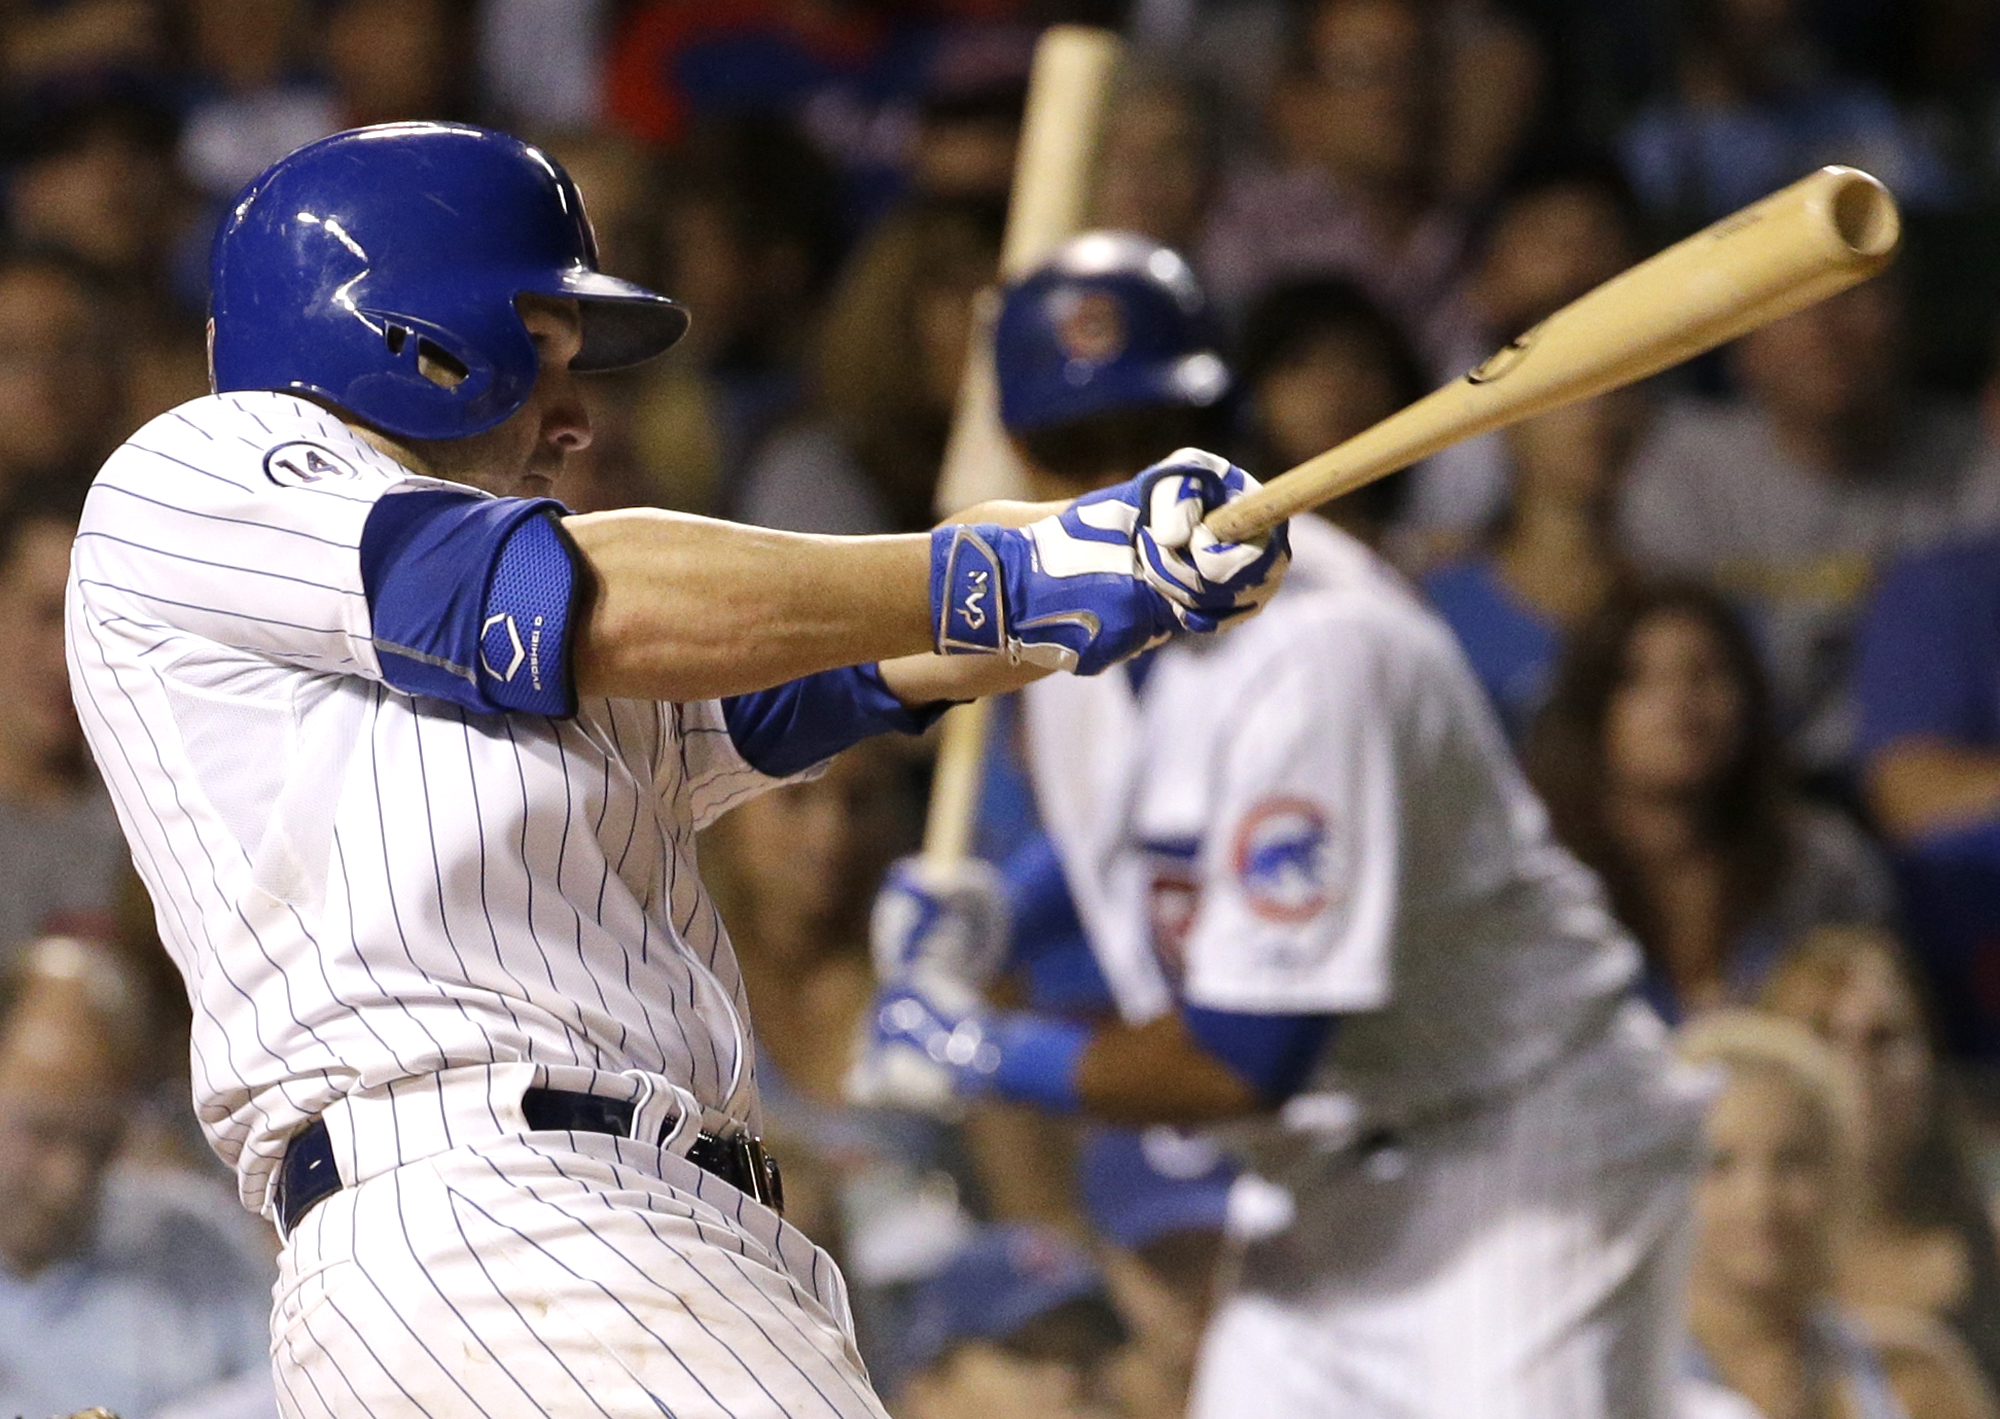 Chicago Cubs' Miguel Montero hits the game-winning solo home run against the Milwaukee Brewers during the 10th inning of a baseball game Wednesday, Aug. 12, 2015, in Chicago. The Cubs won 3-2. (AP Photo/Nam Y. Huh)